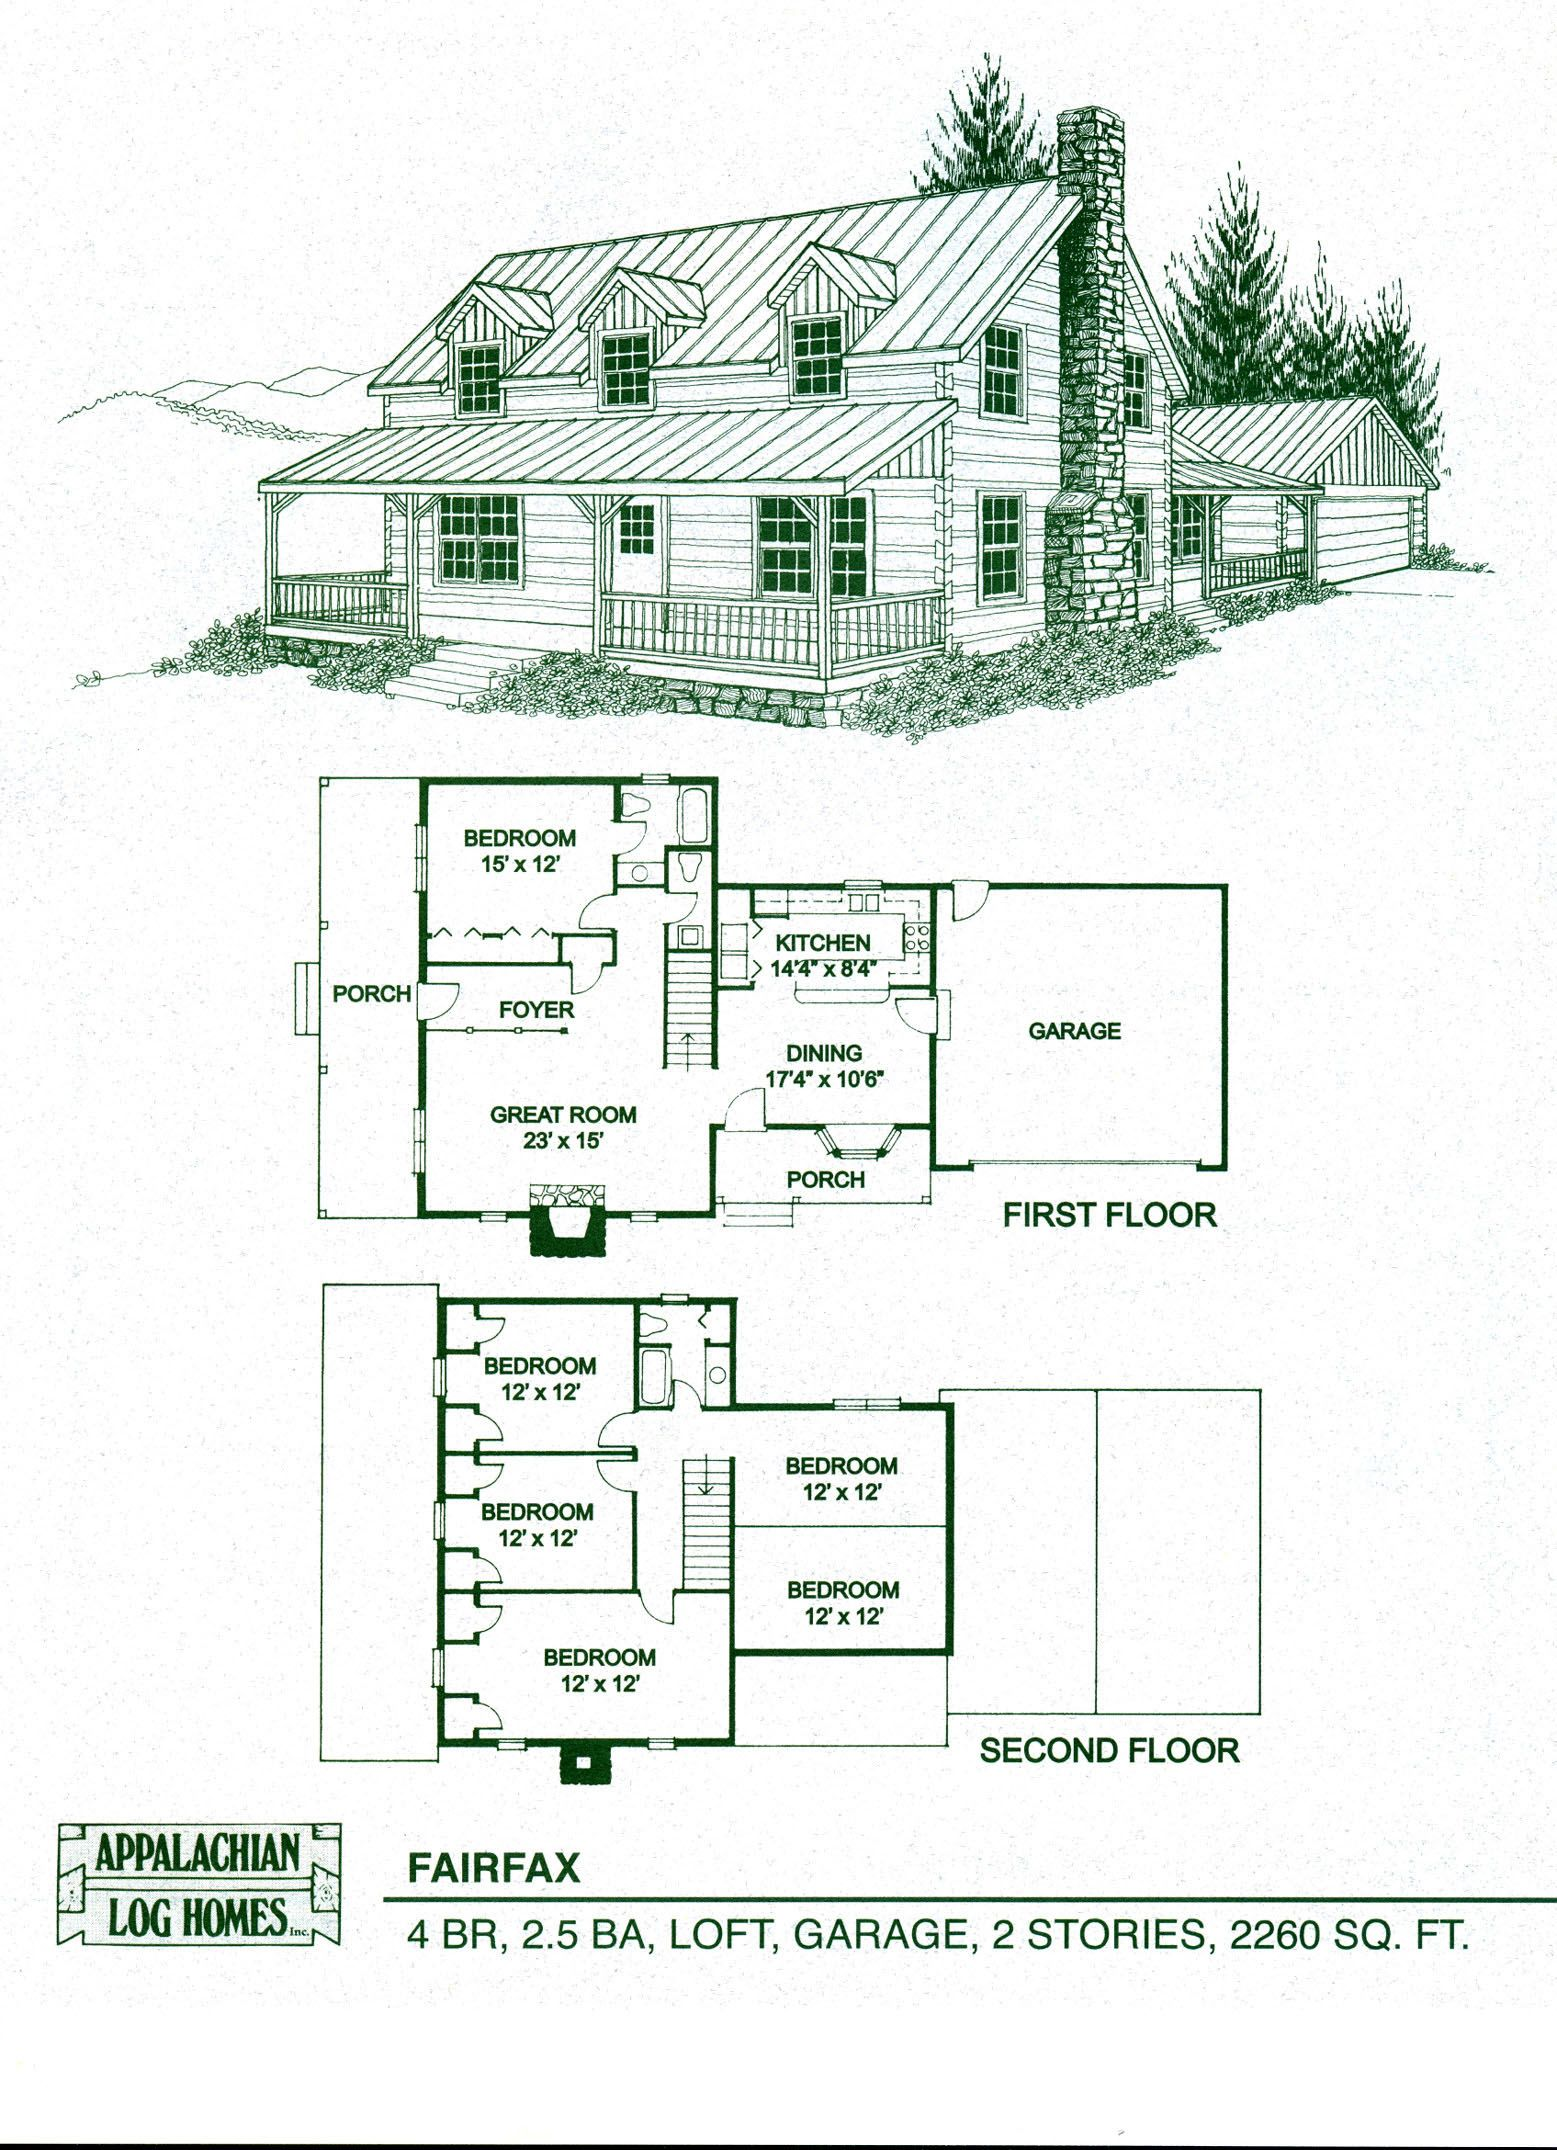 Log Home Package Kits Log Cabin Kits Fairfax Model Cool House Designs Log Home Floor Plans Cabin Plans